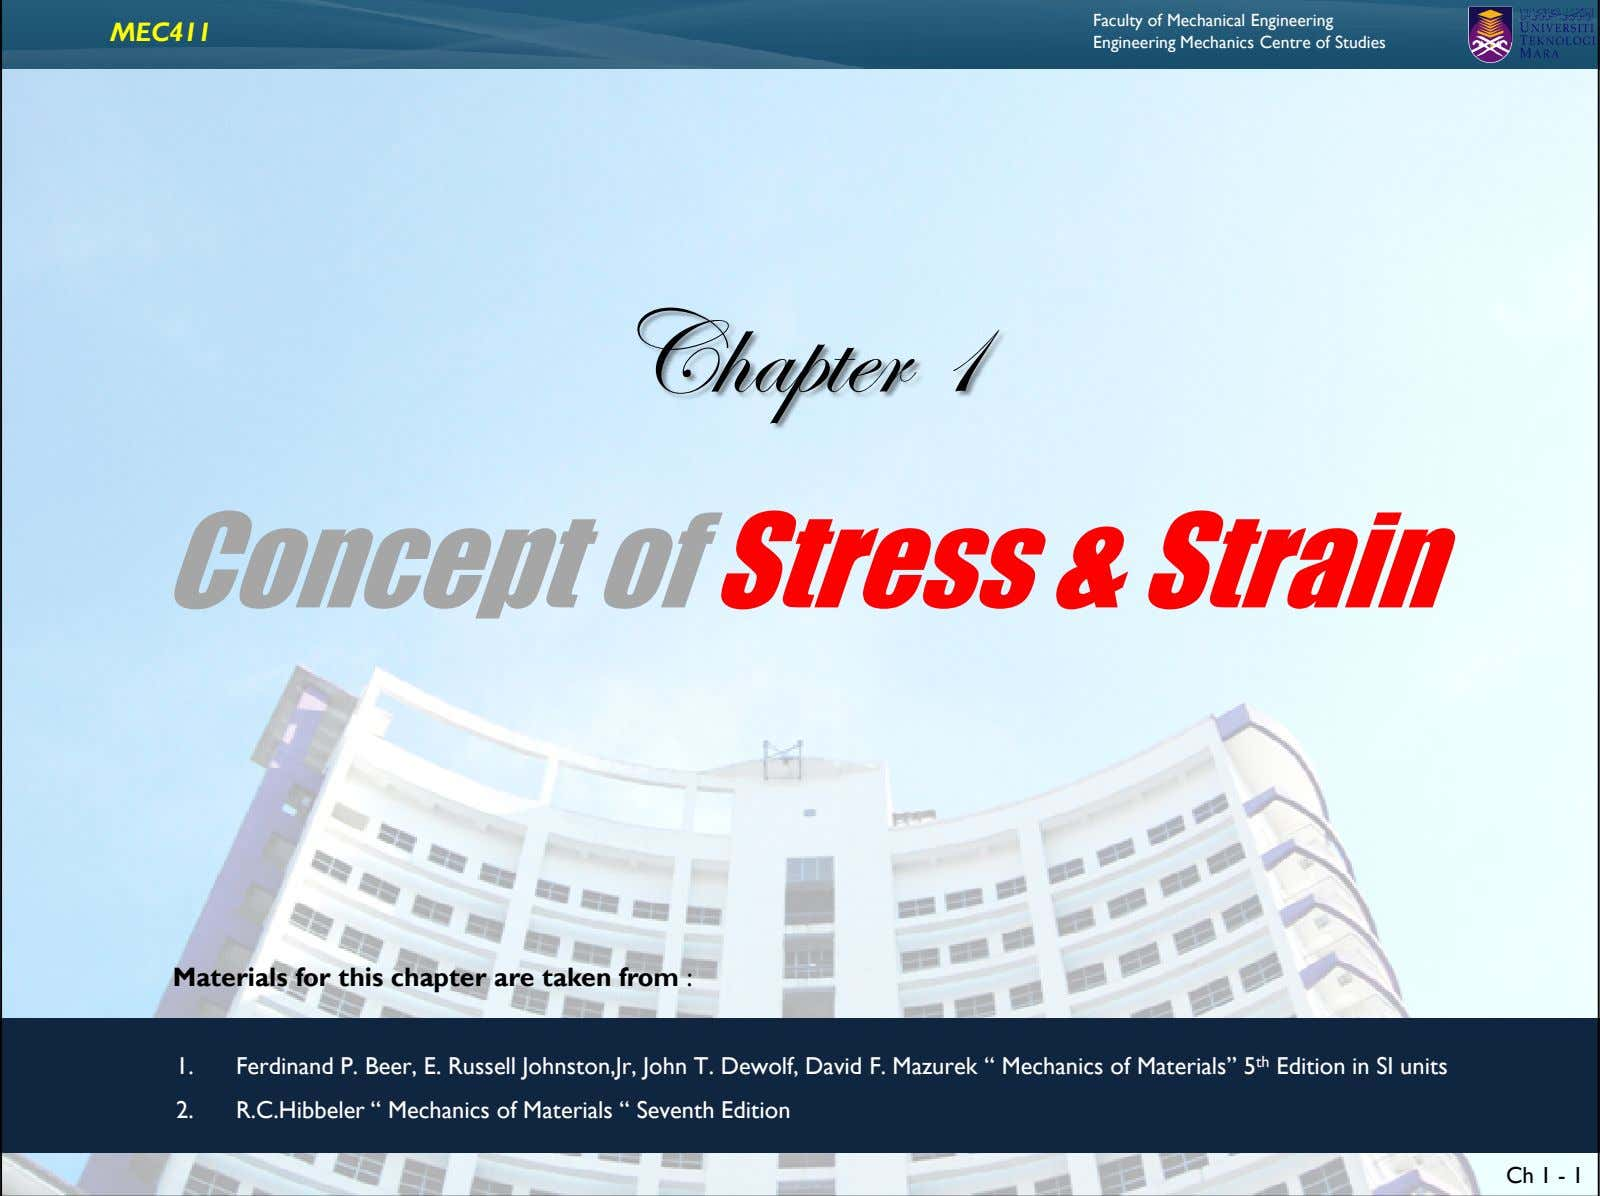 MEC411 Faculty of Mechanical Engineering Engineering Mechanics Centre of Studies V{tÑàxÜ D Concept of Stress